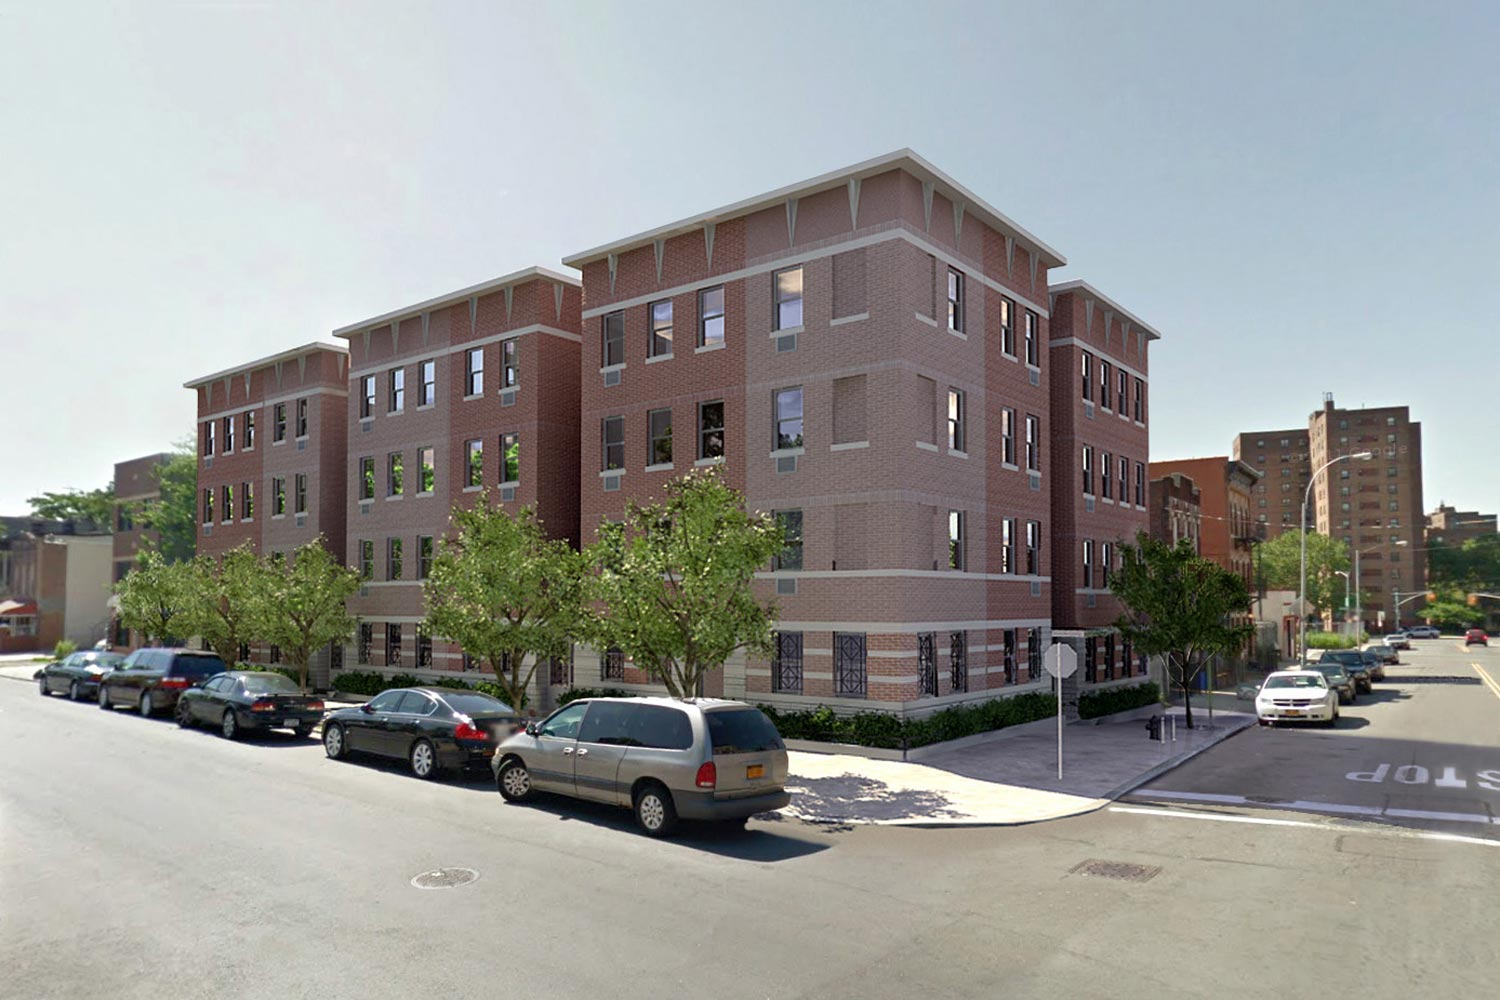 Habitat-NYC project creating green, affordable, two-bedroom condominiums in four buildings in Brooklyn.